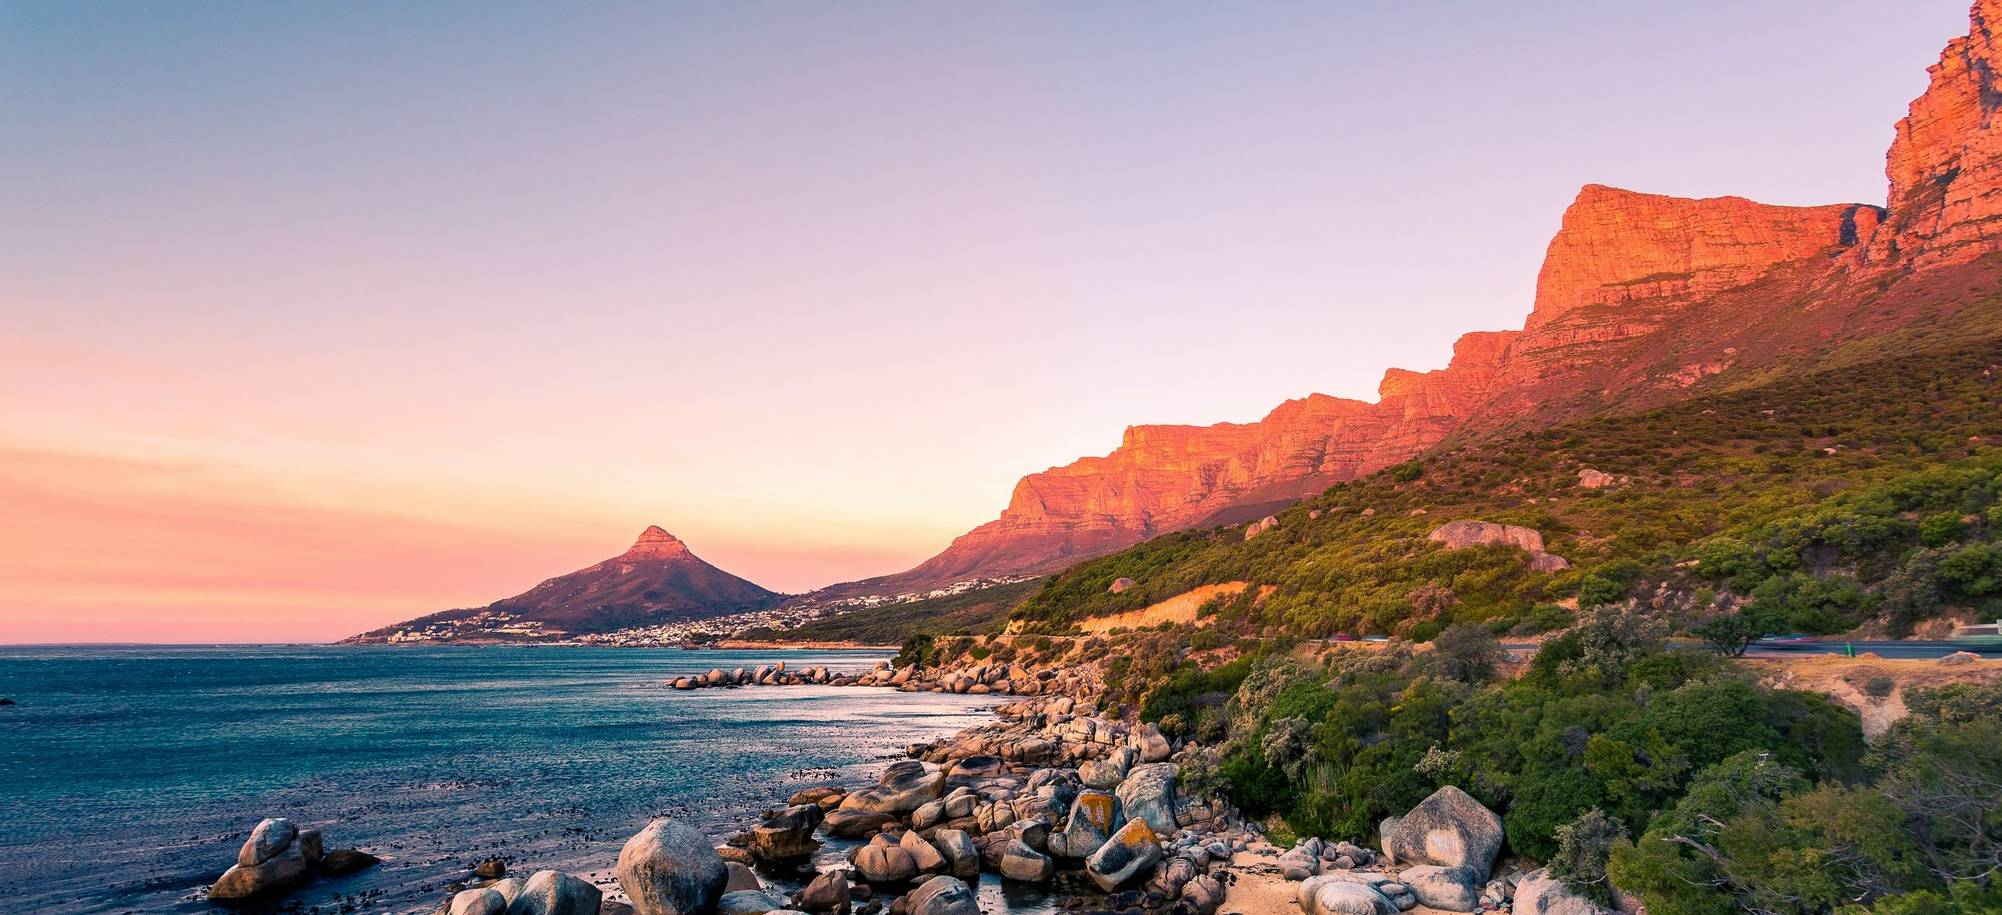 A wide picture of Clifton Beach in Cape Town, South Africa at late afternoon in a beautiful sunset. Colorful and satured tak…